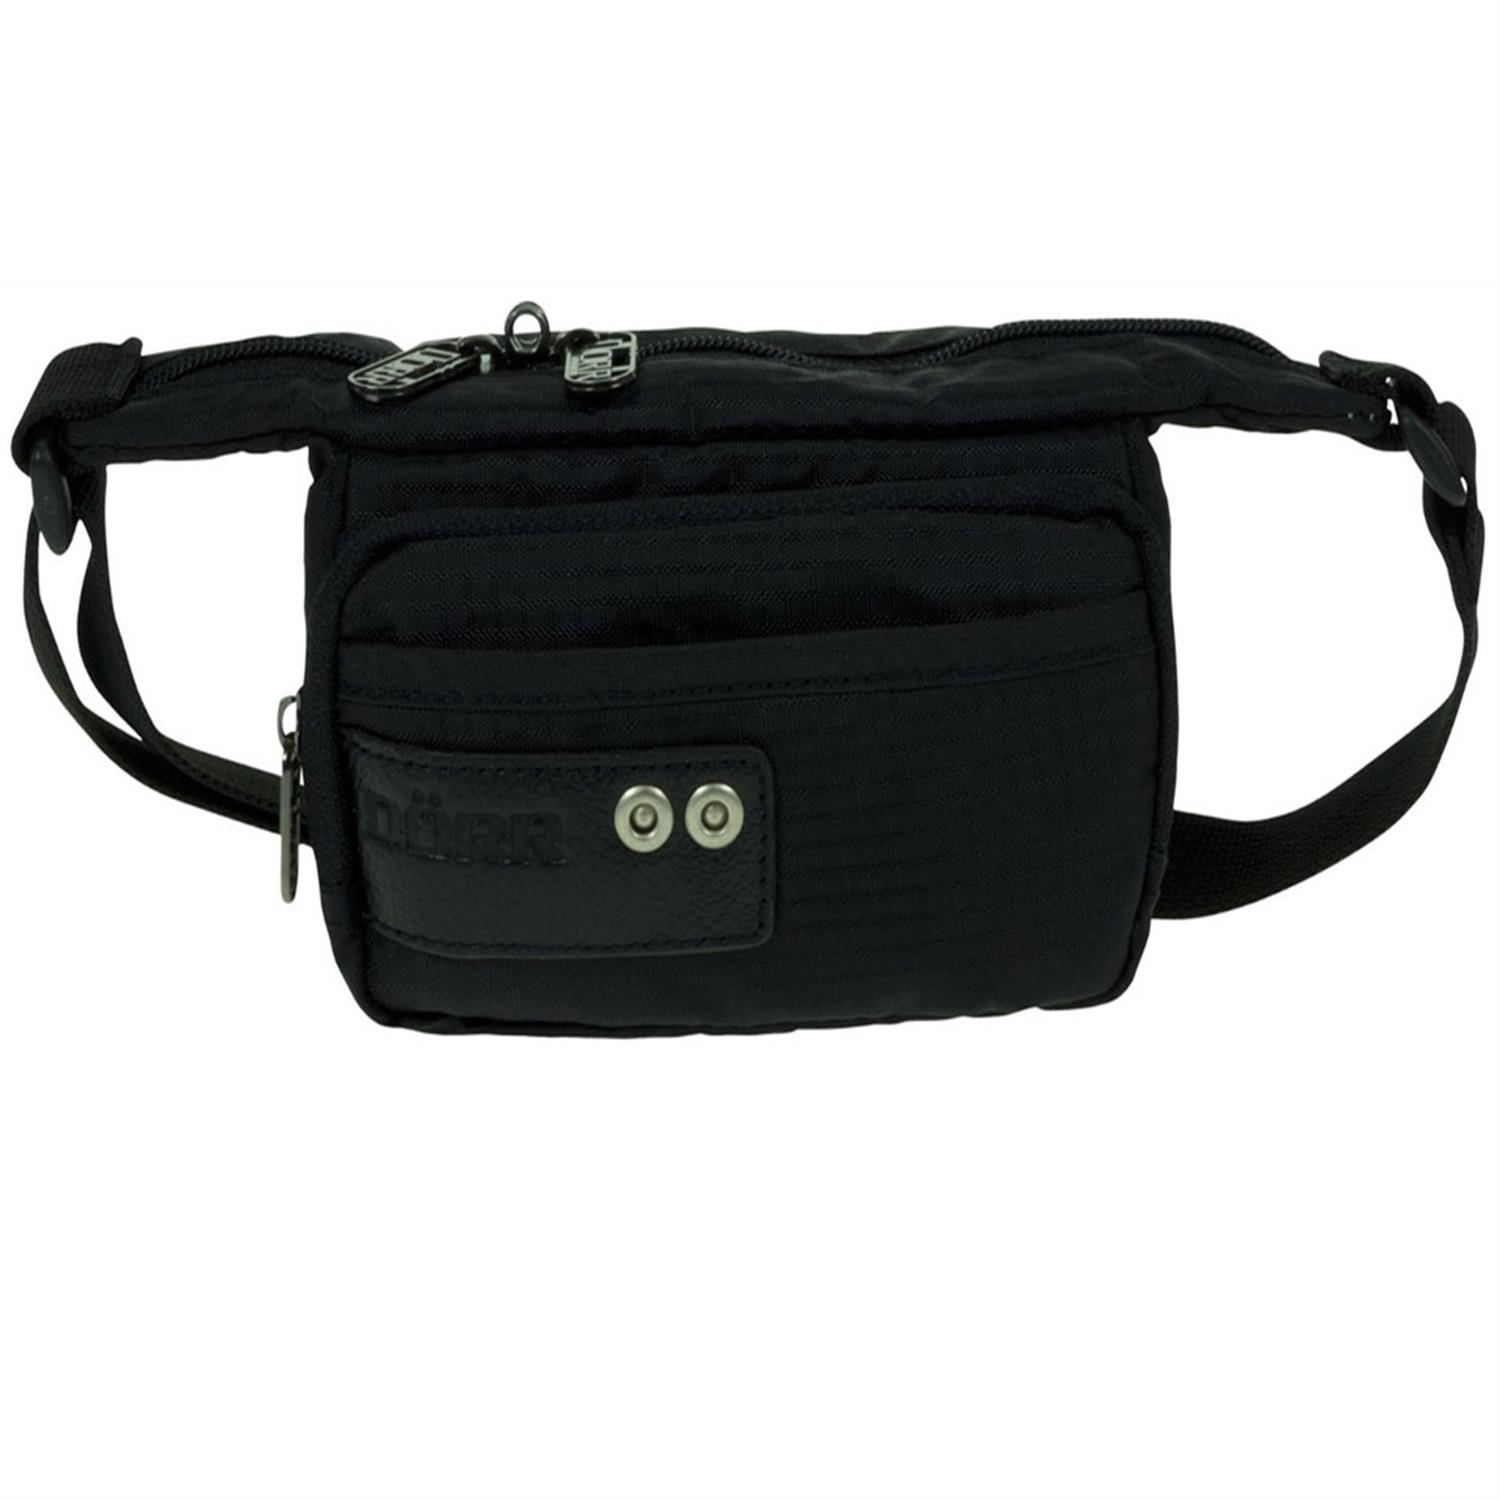 Dorr Aero Extra Small Photo Camera Bag